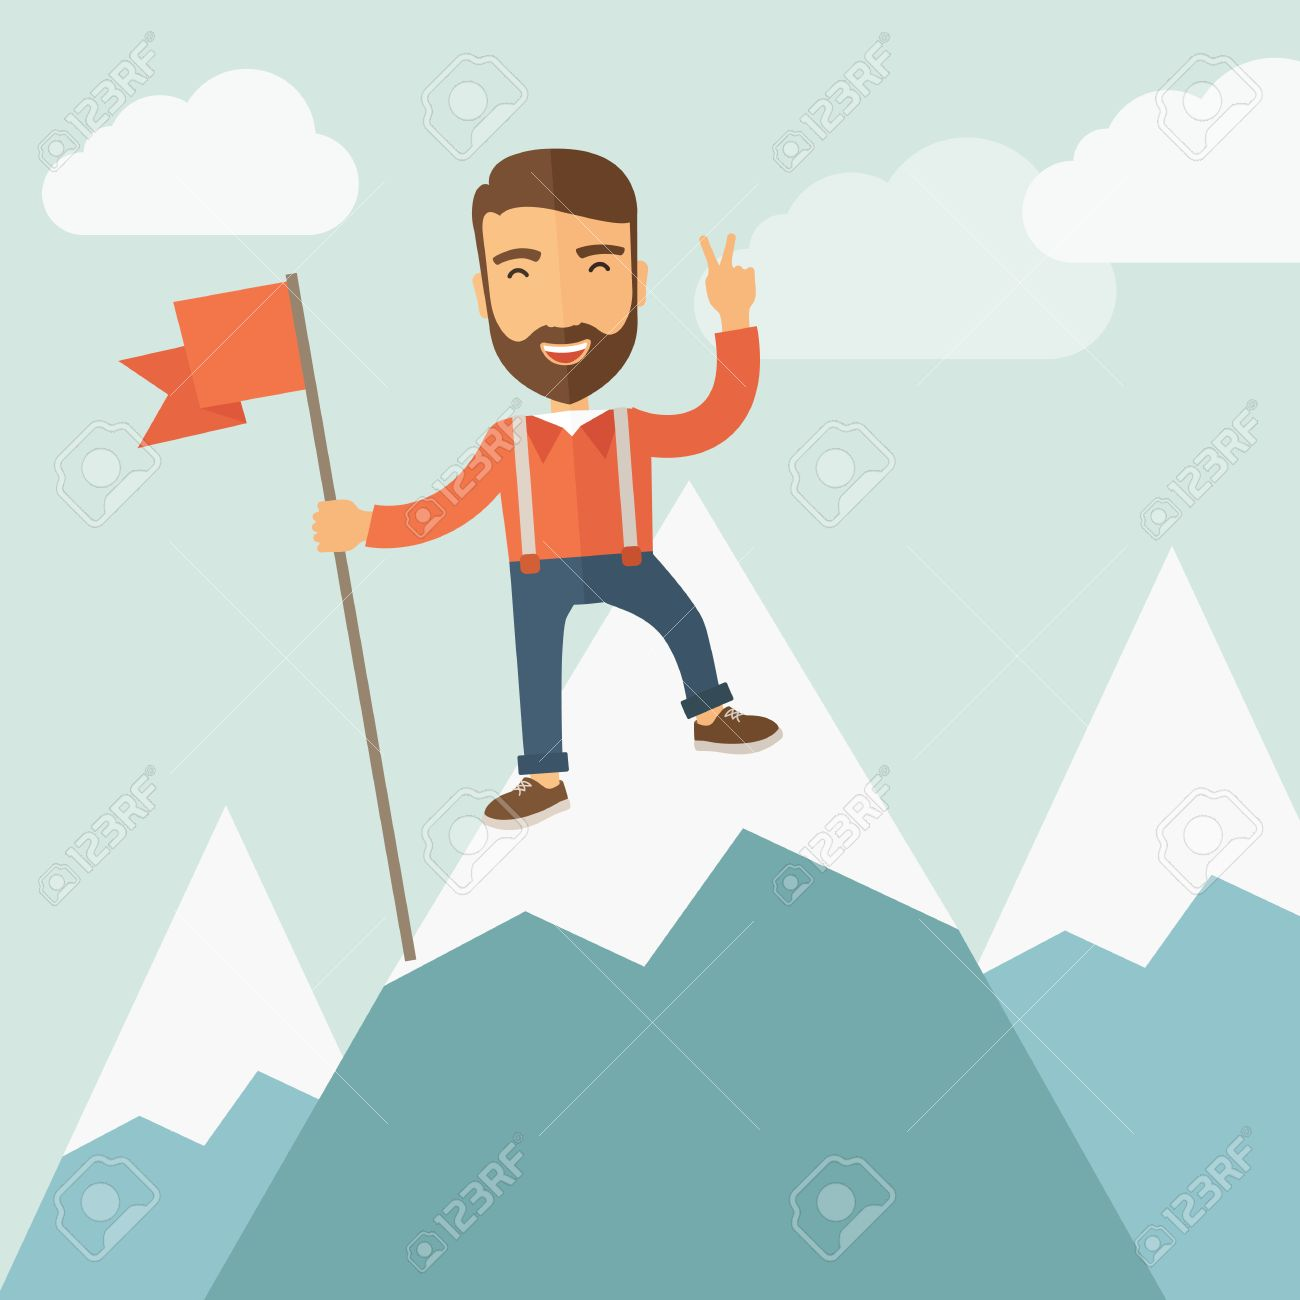 Mountain clipart happy #11